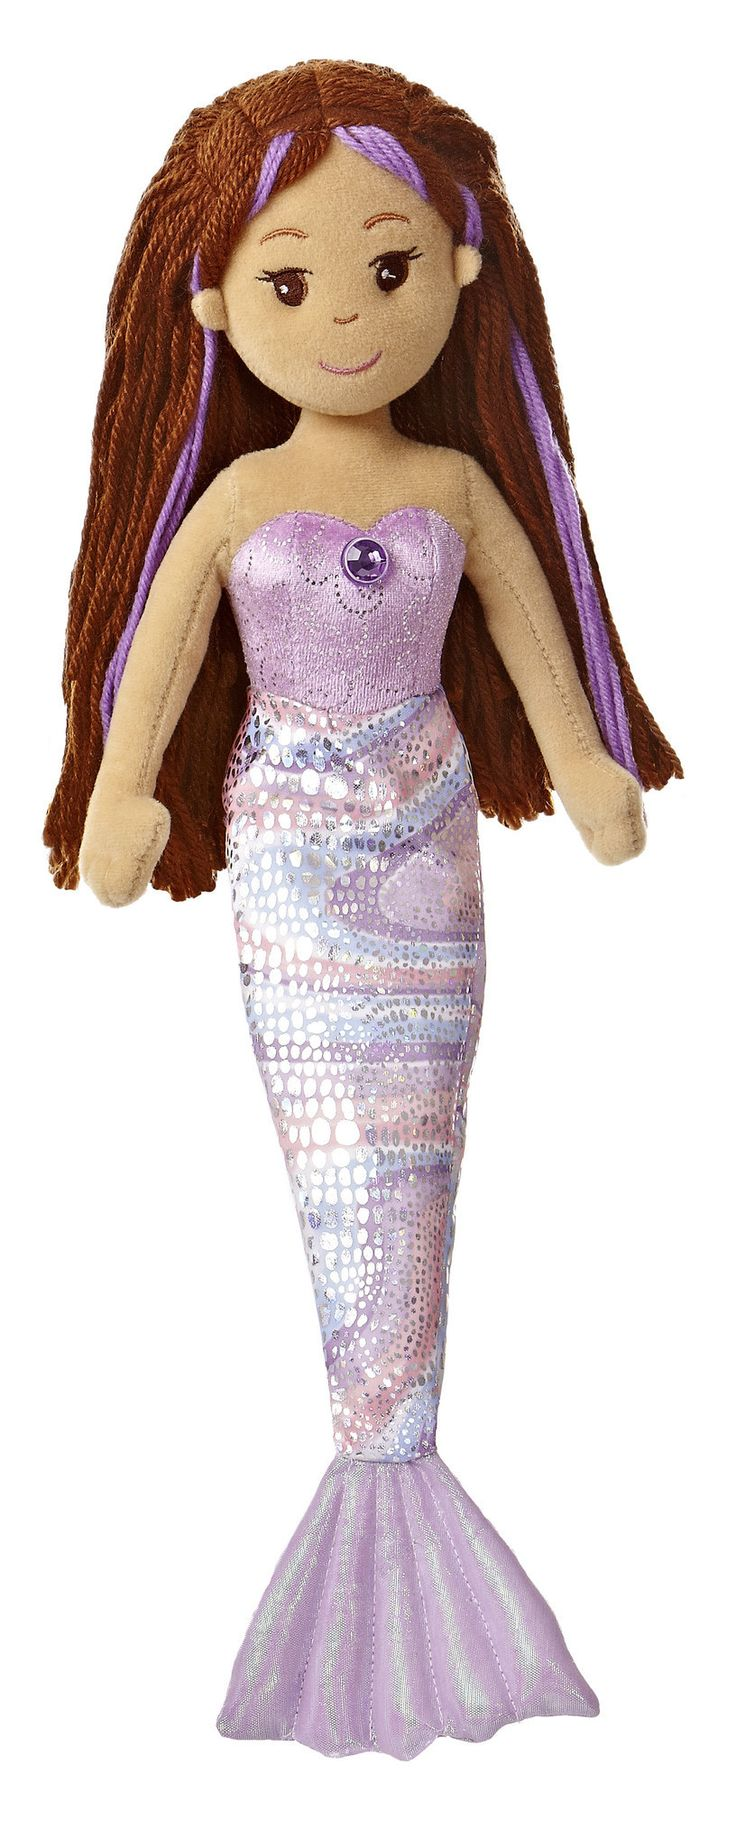 "18"" medium SOPHIA is a beautiful dark-skinned mermaid doll with brown flowing hair and sparkly purple fin and purple jewel. - Made with beautiful sparkle and shimmer fabrics and jewel accent - Yarn ha"